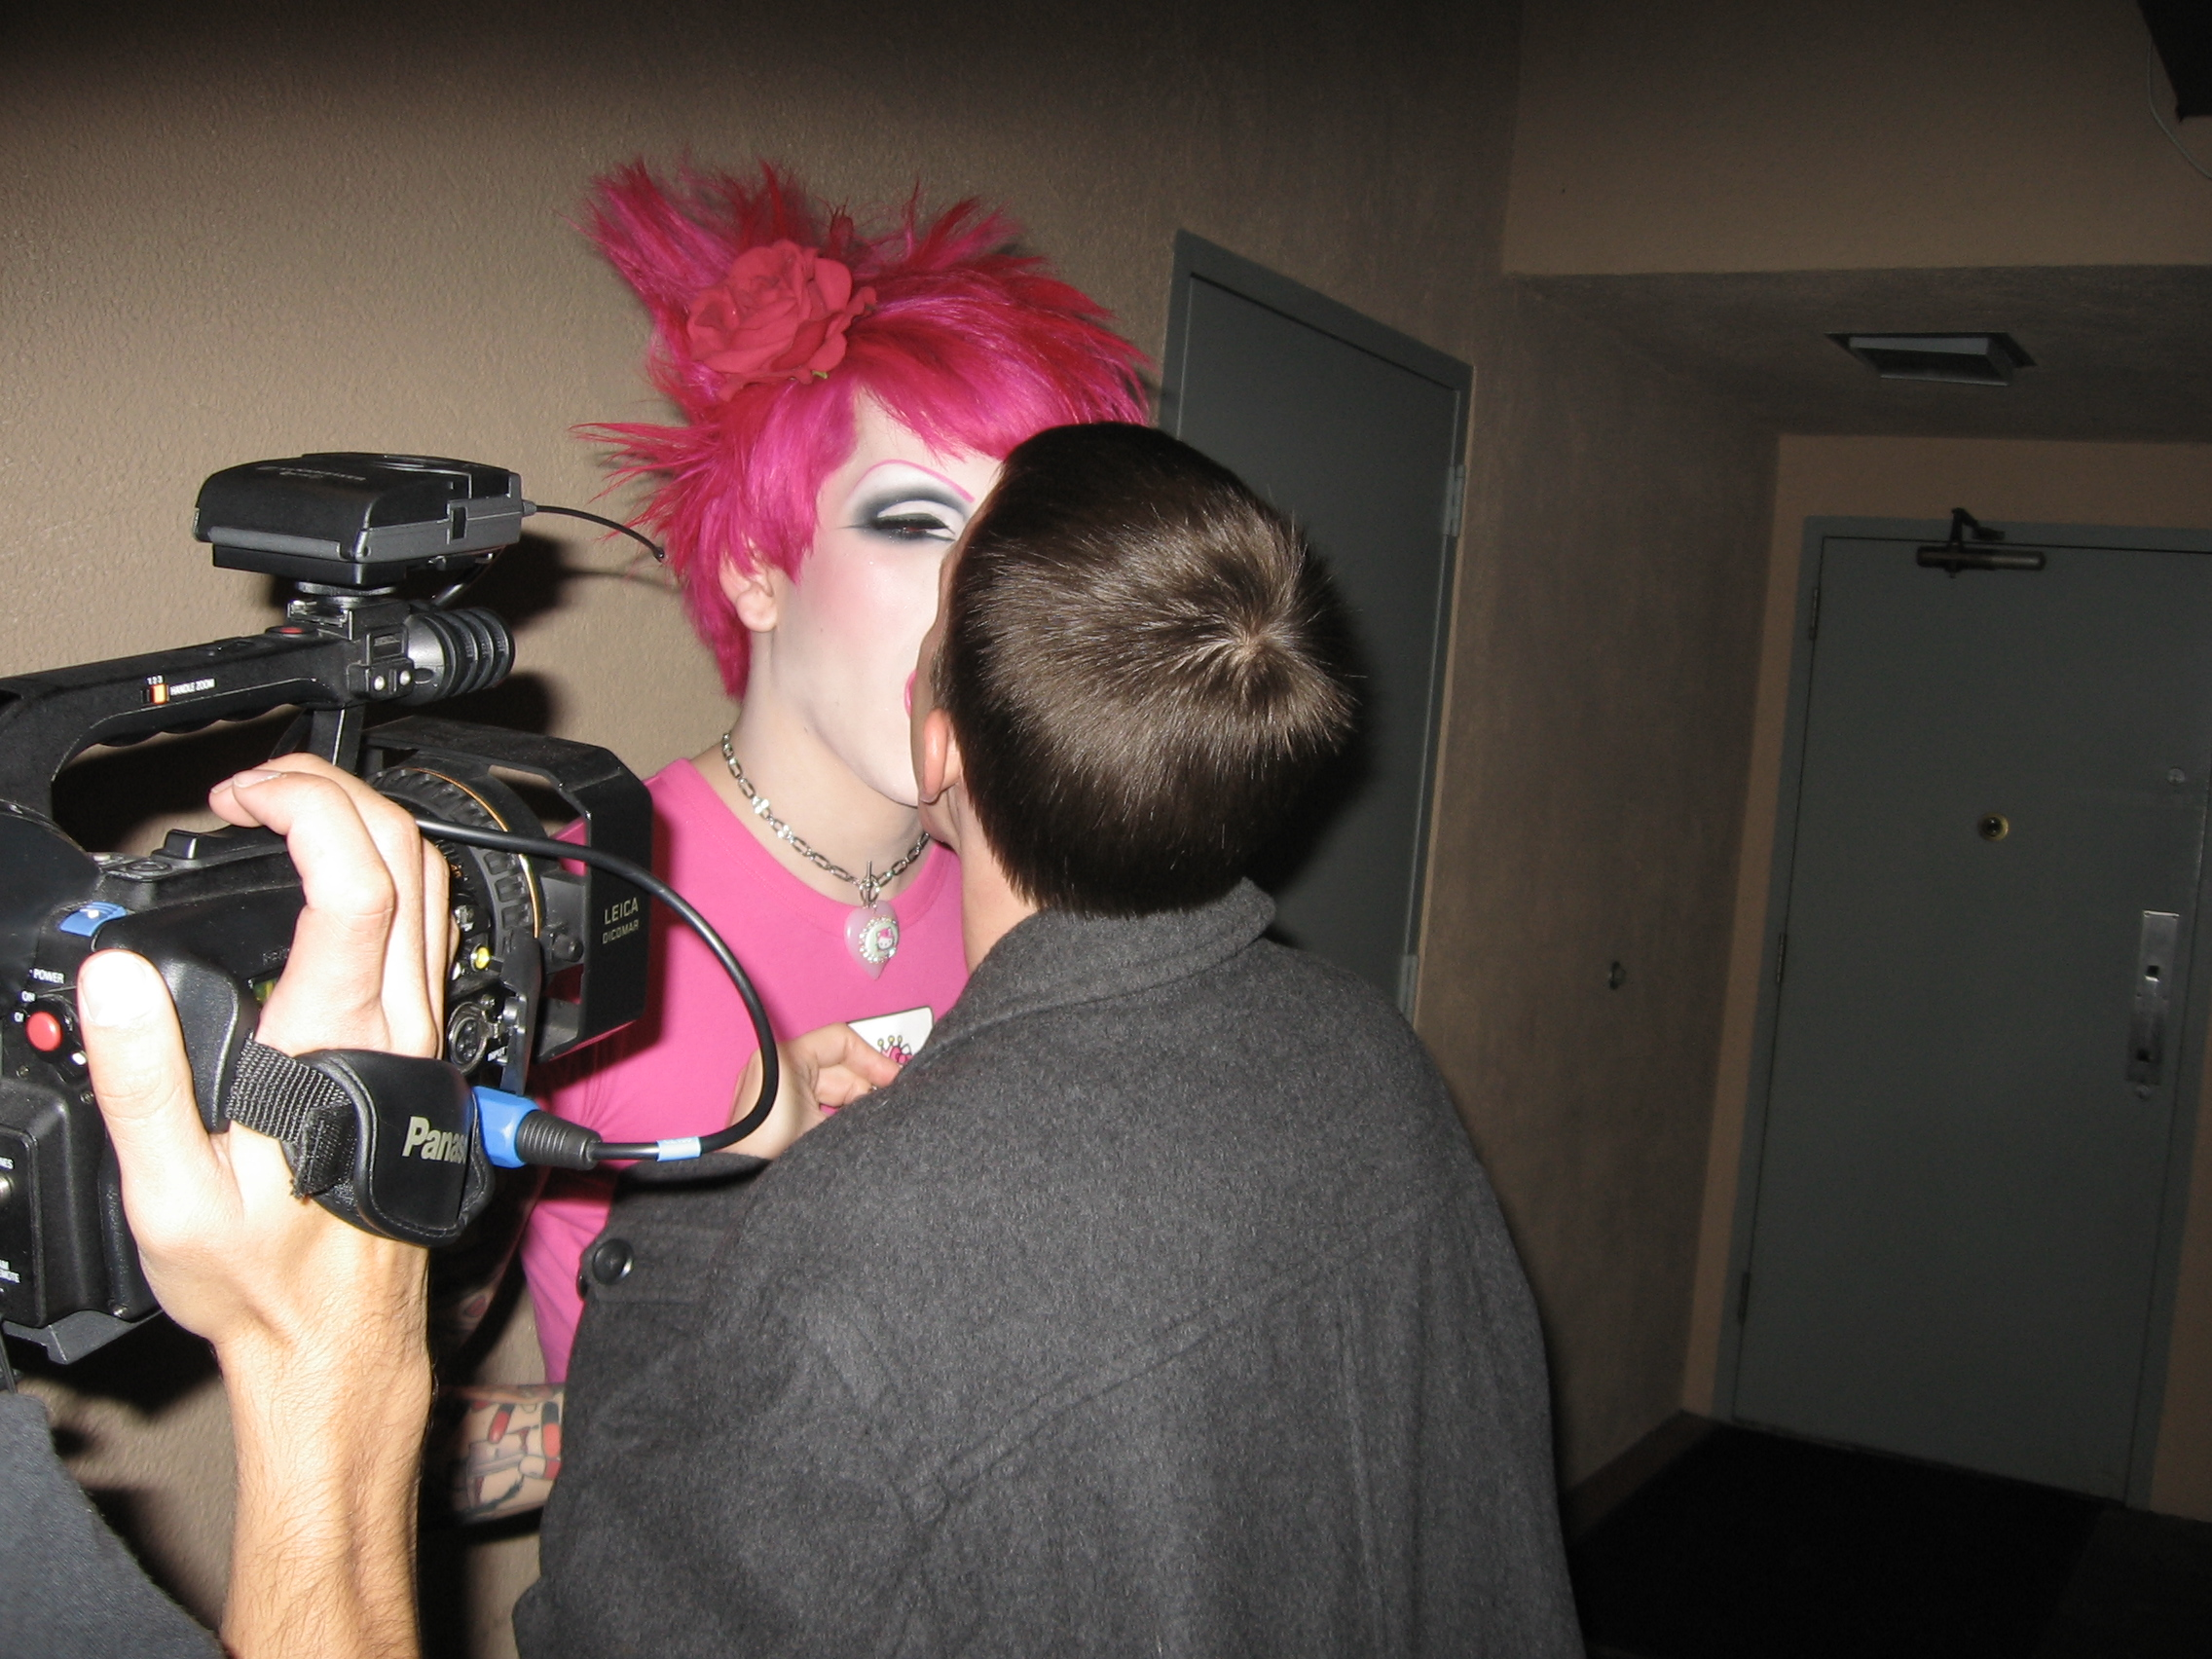 ... accosting Jeffree Star with his mouth